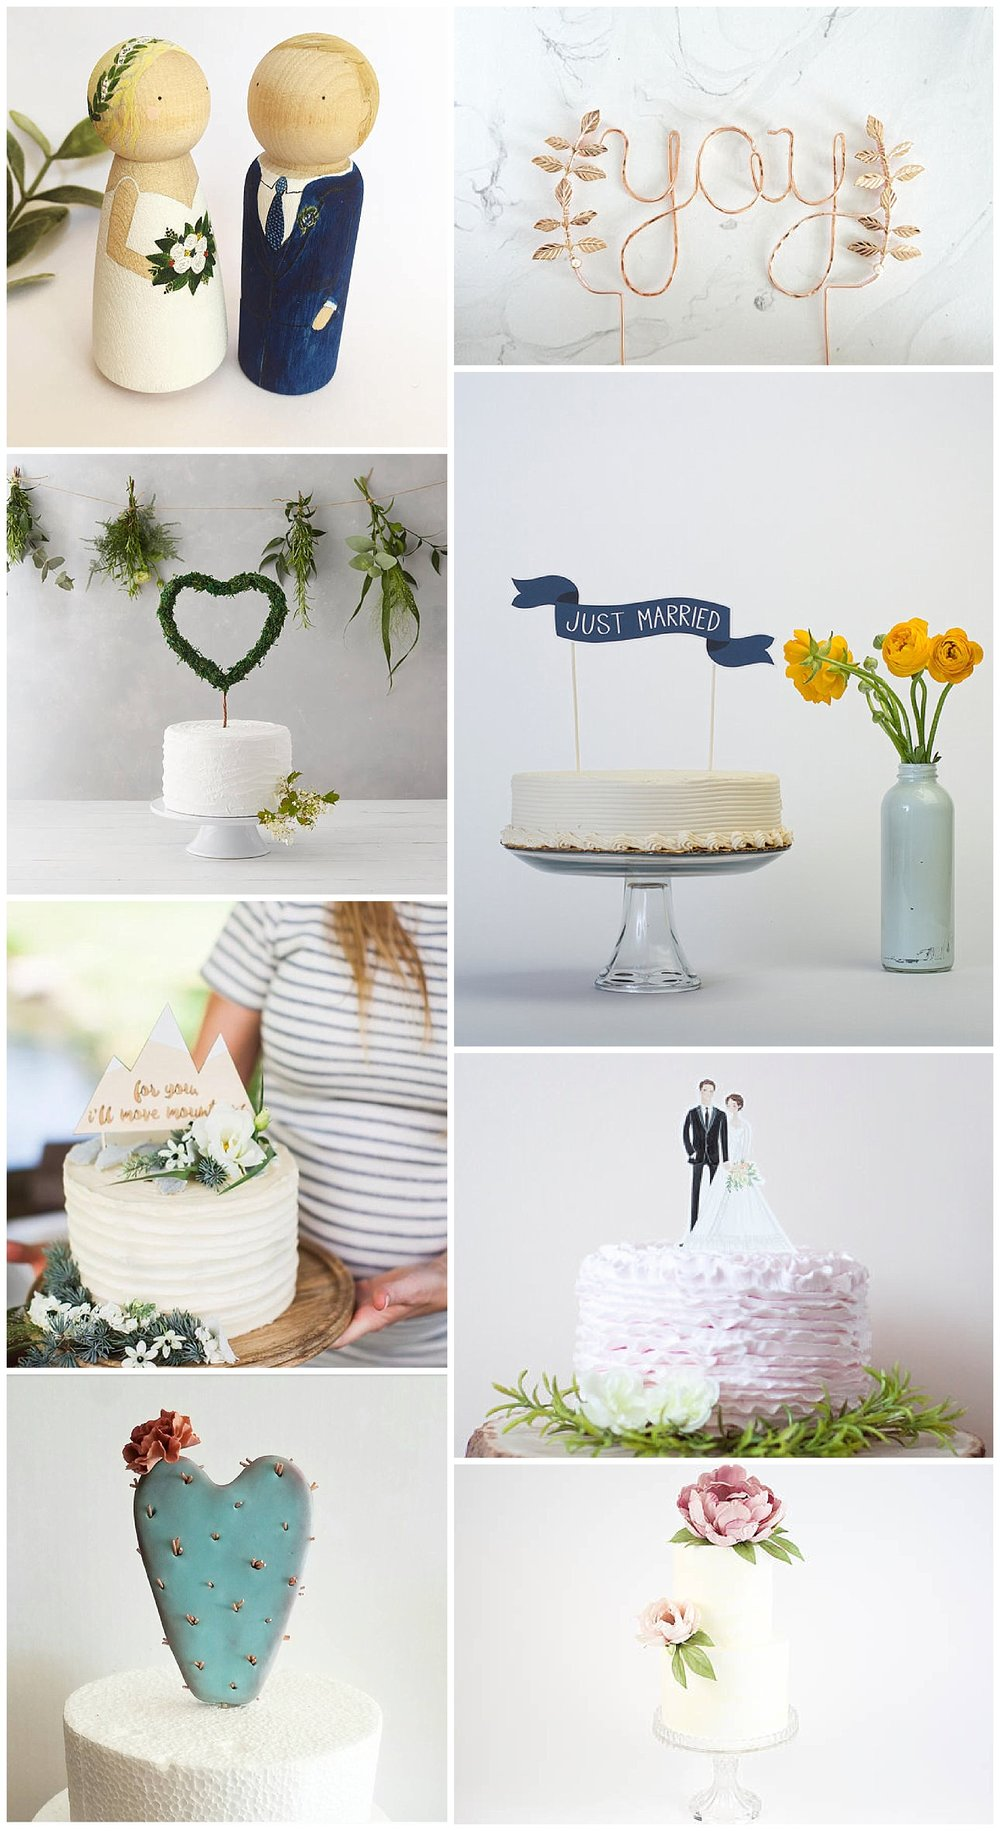 Arizona-wedding-coordinator-etsy-wedding-cake-topper-roundup.jpg